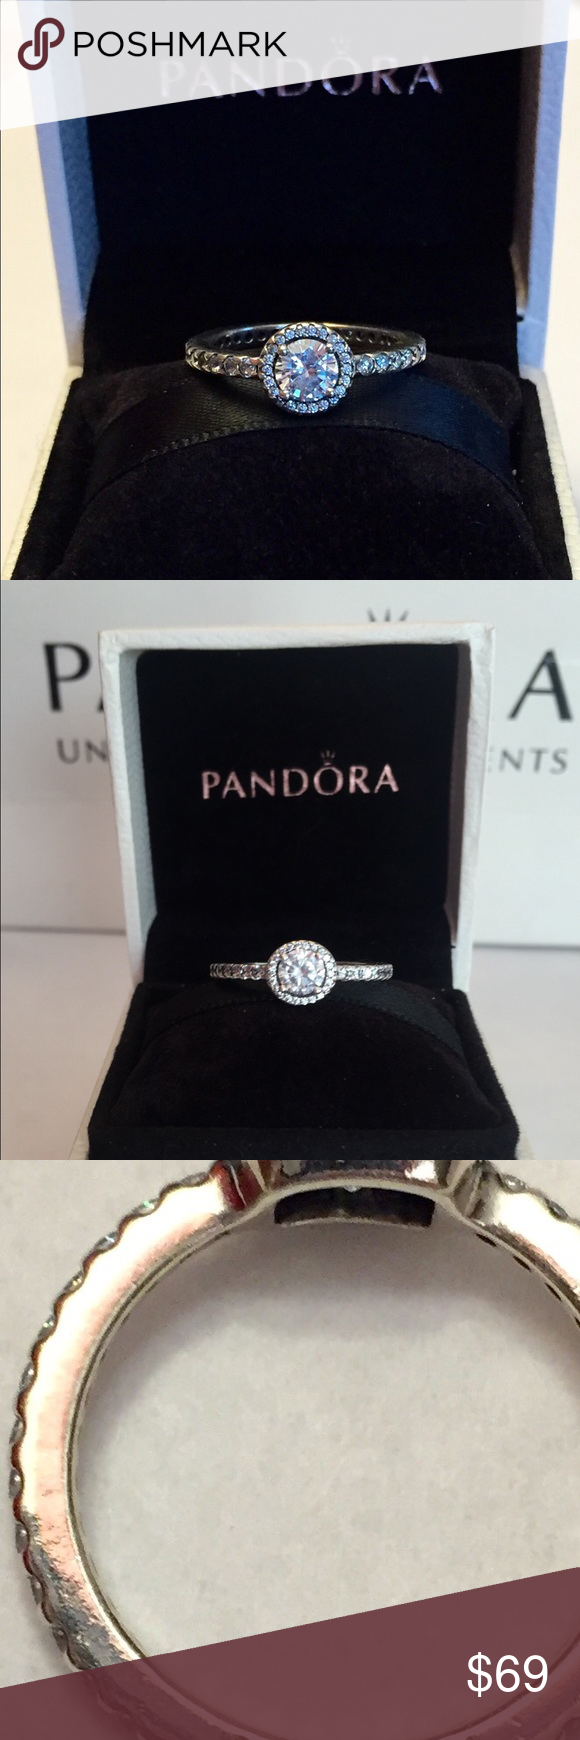 6ea4a7474 Authentic Pandora Classic Elegance Ring size 7-54 Sterling Silver with  Cz's. Hallmark Stamp S 925 ALE. Size 7-54..The Pandora Hinged Box is  included.